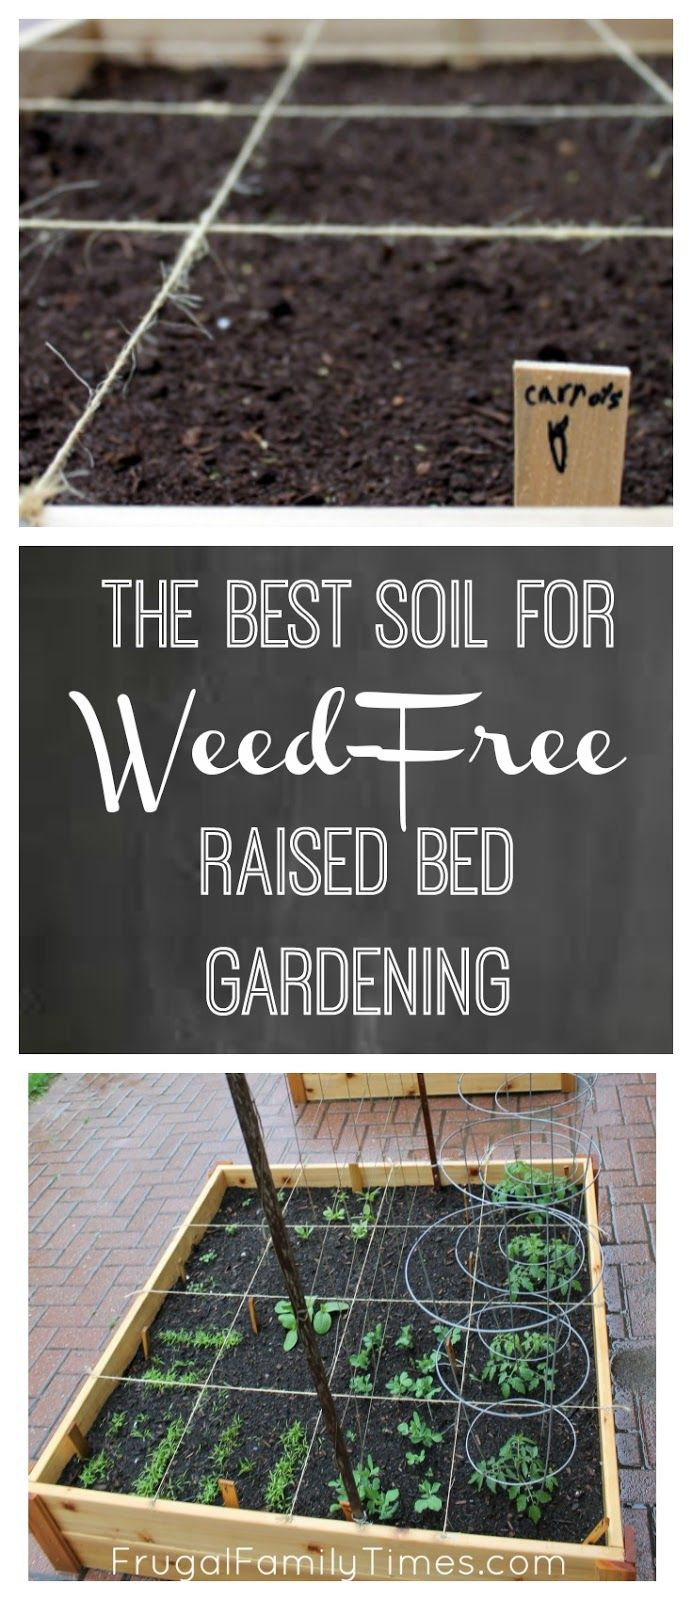 Choosing the soil for your raised bed, square foot garden.  The dirt on how to add soil to your beds to have a no or low weed